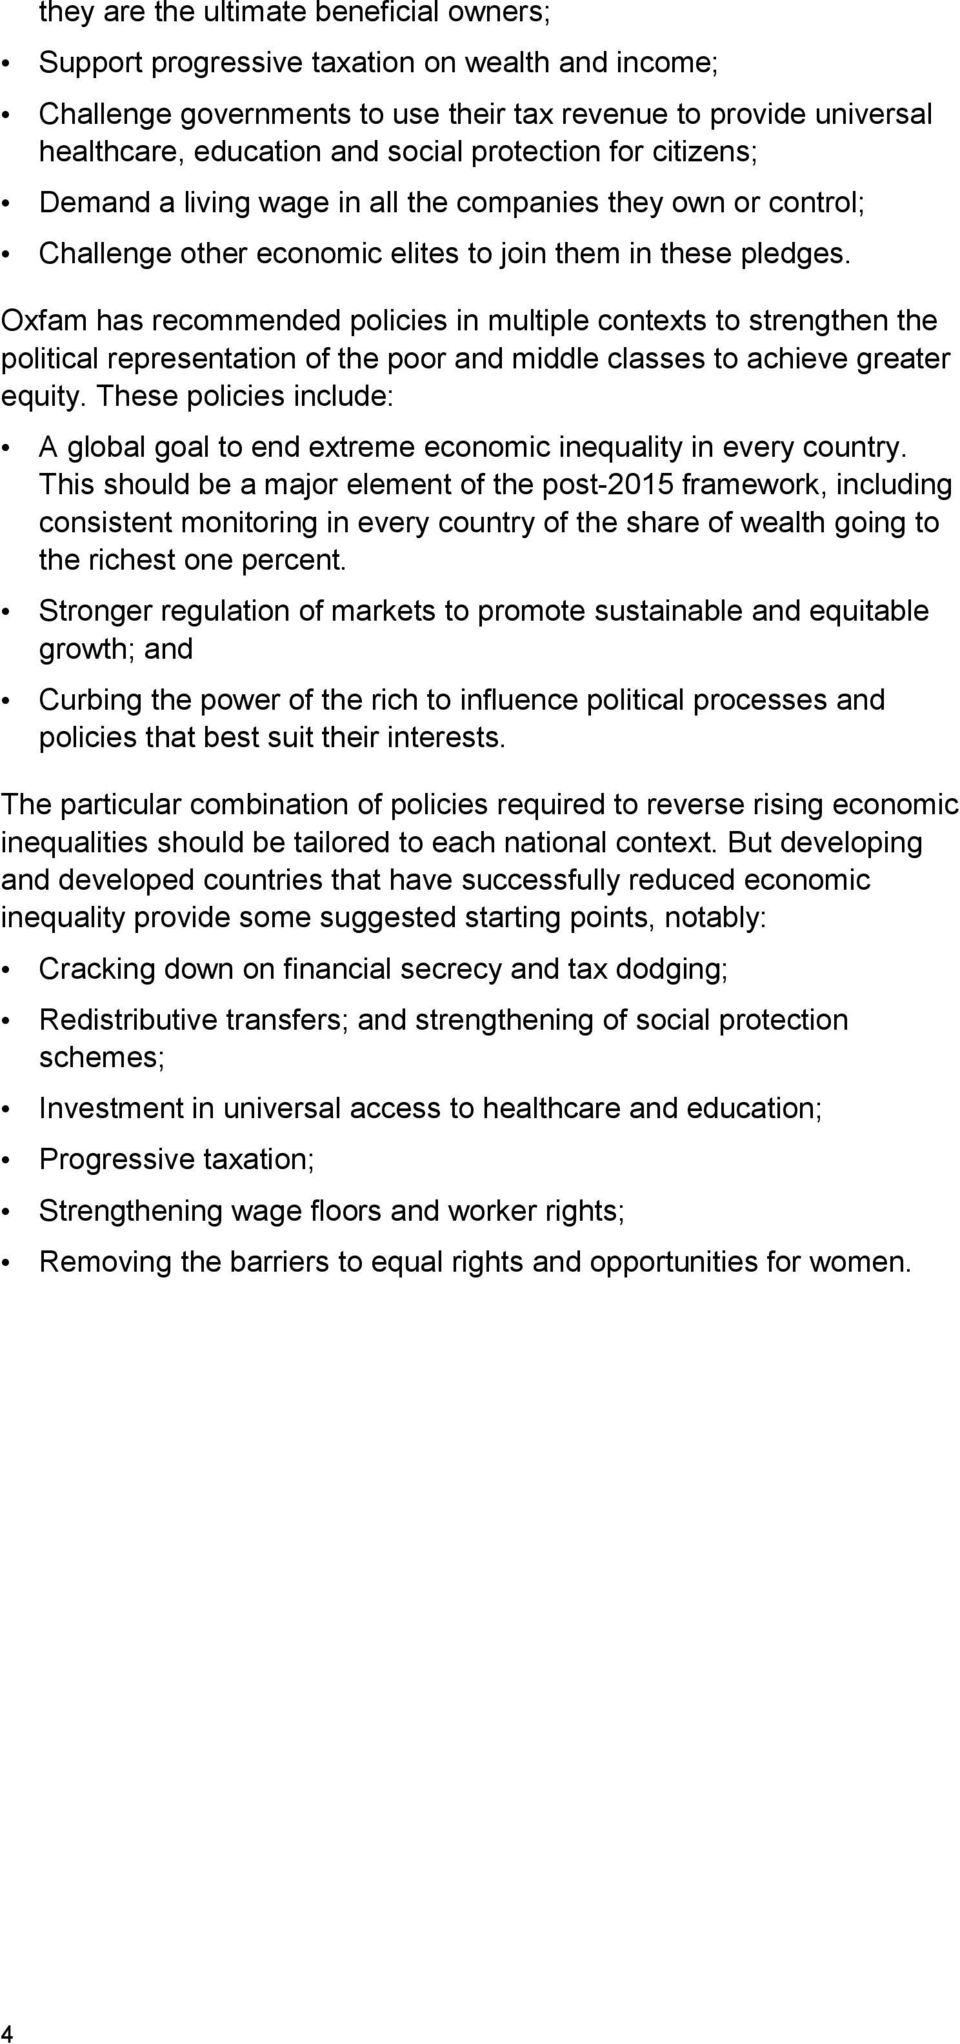 Oxfam has recommended policies in multiple contexts to strengthen the political representation of the poor and middle classes to achieve greater equity.